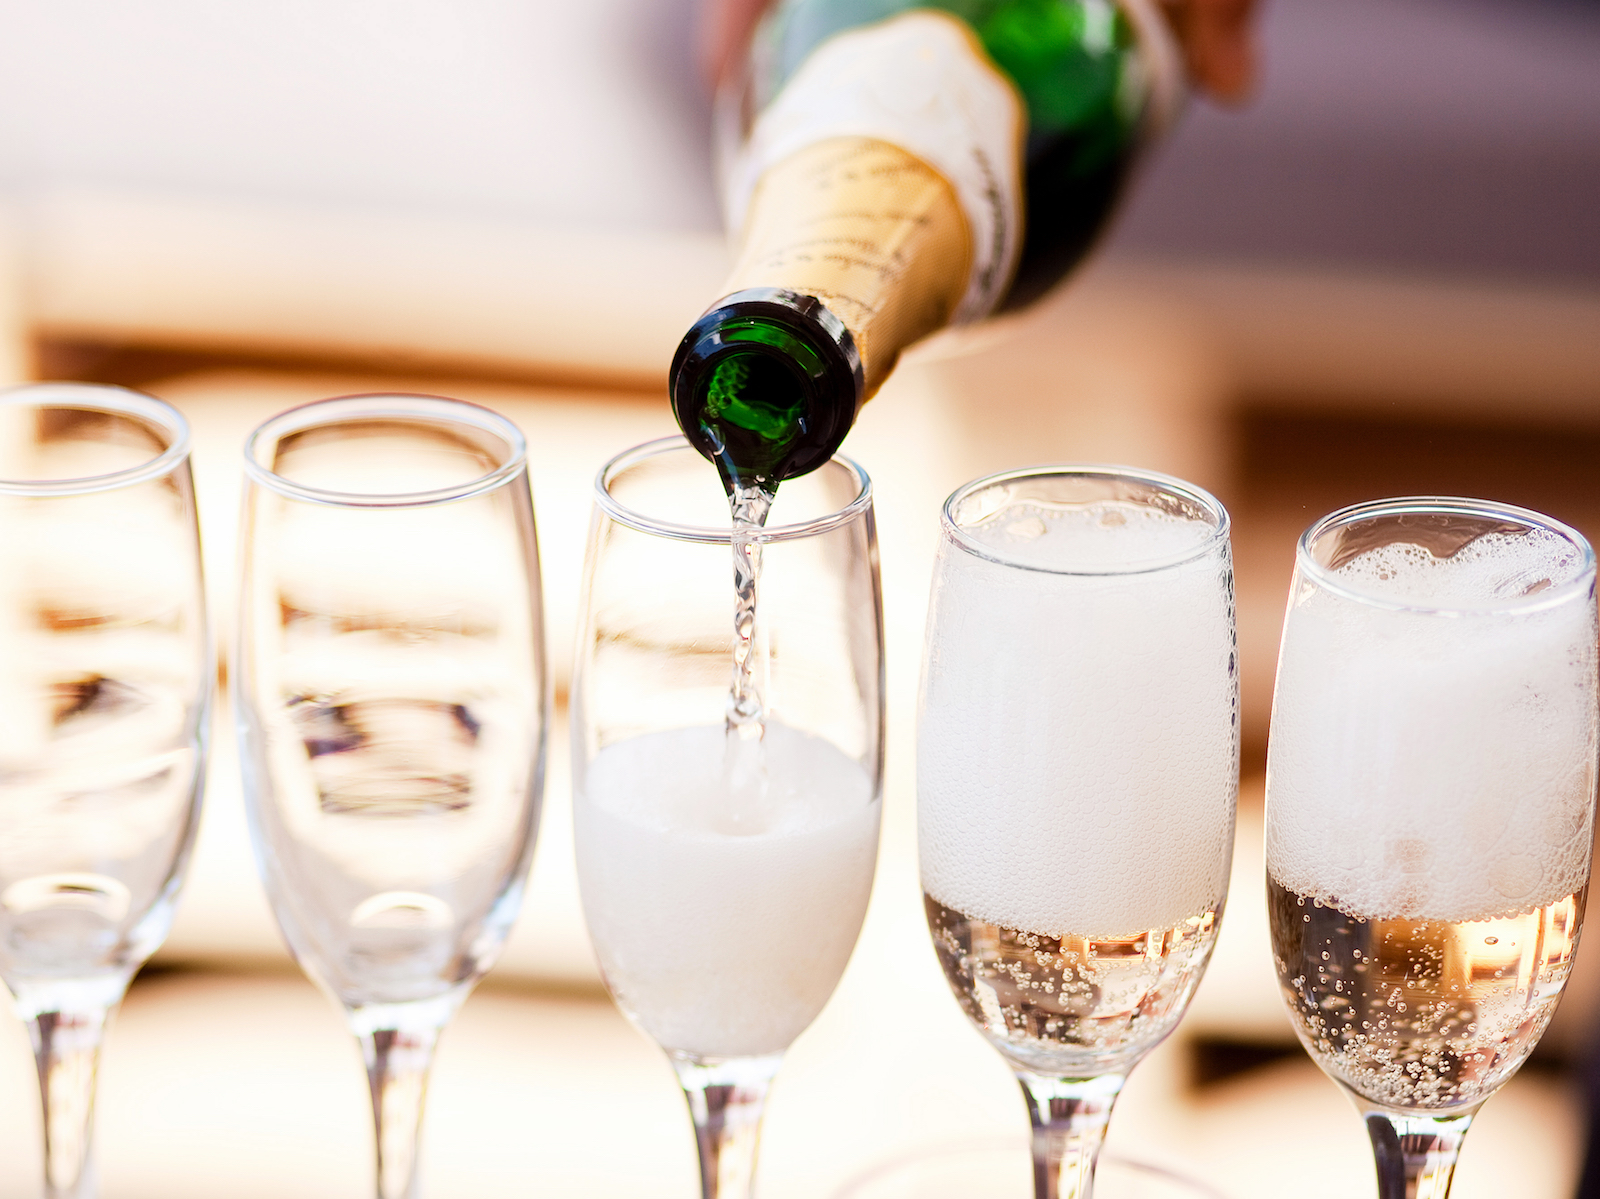 prosecco-origin-australia-FT-BLOG0120.jpg